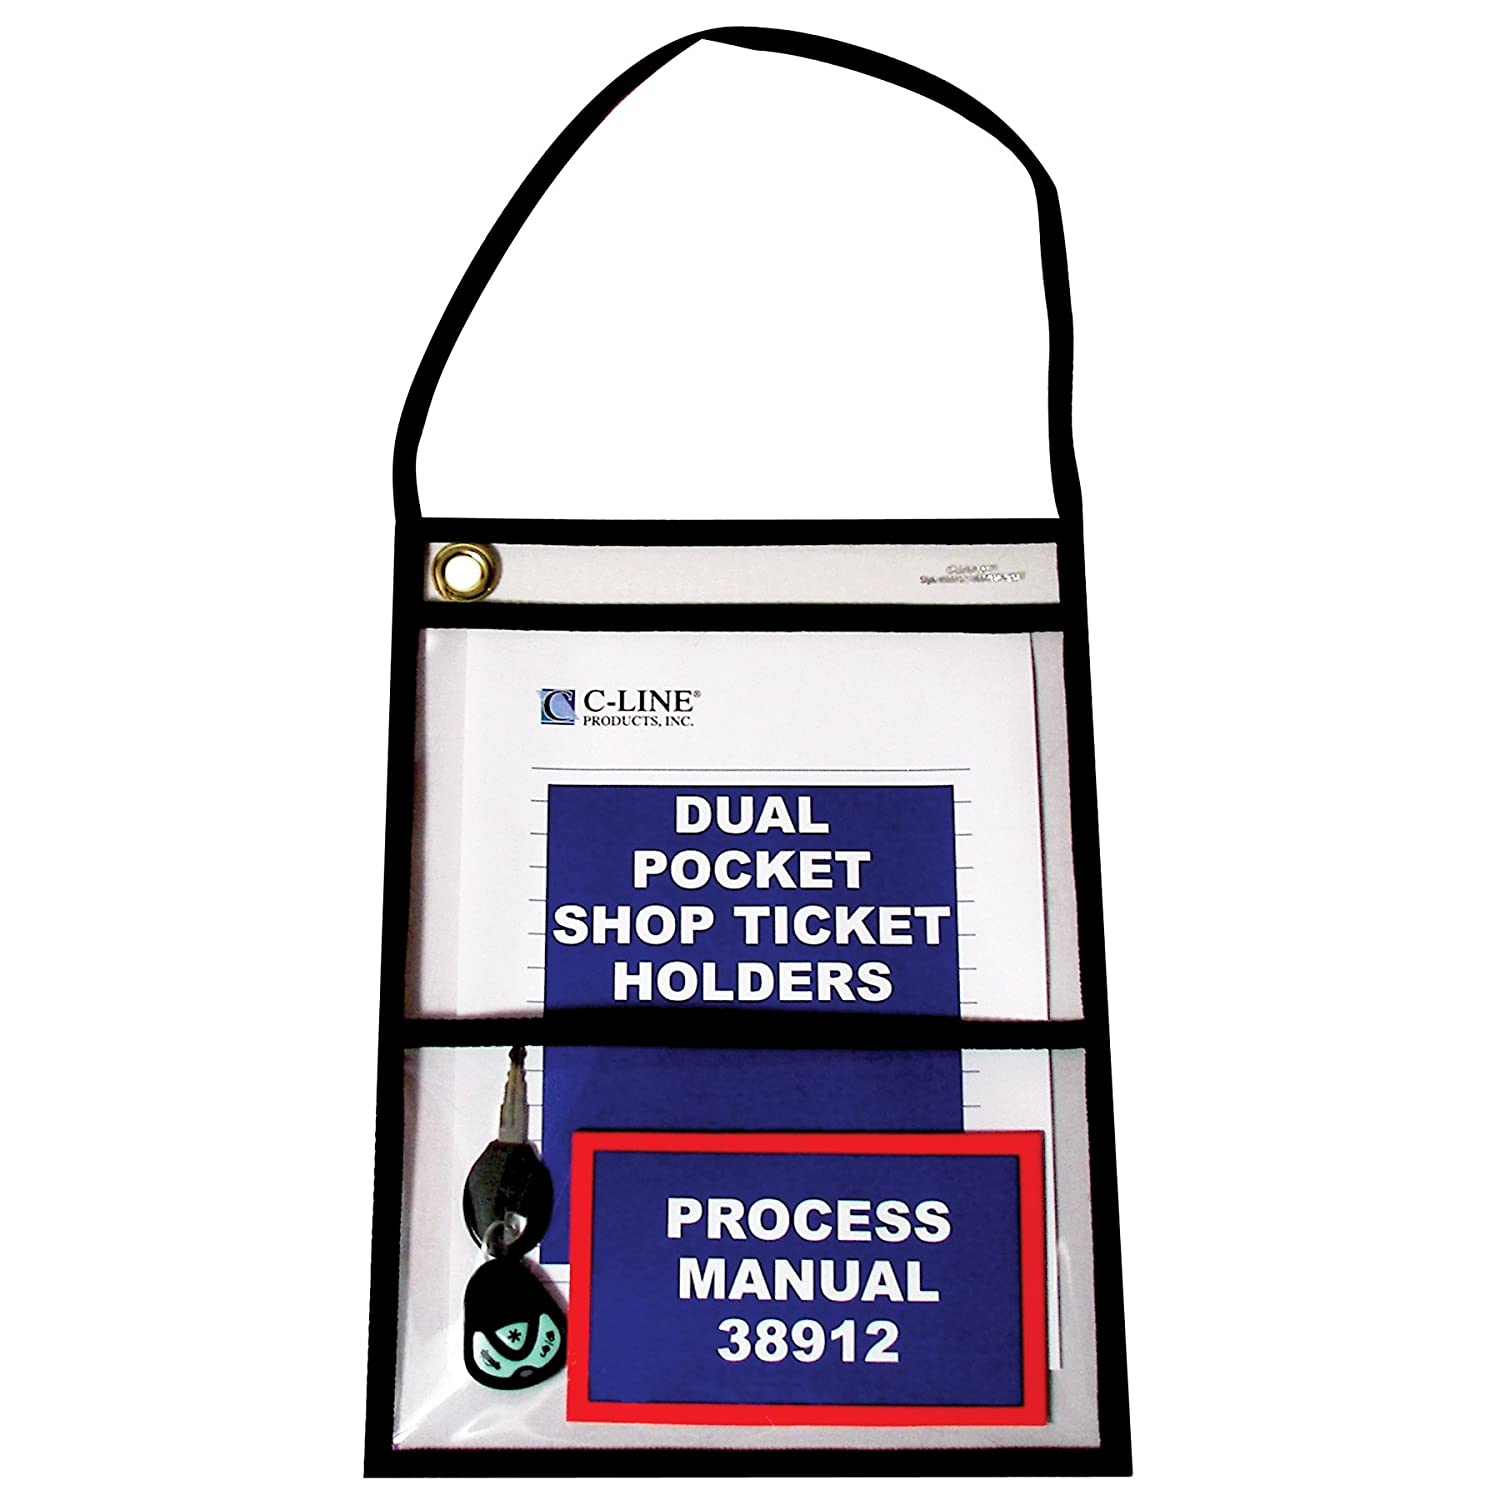 C-Line Stitched Dual Pocket Shop Ticket Holder with Hanging Strap, Both Sides Clear, 9 x 12 Inches, 15 per Box (38912) C-Line Products Inc.